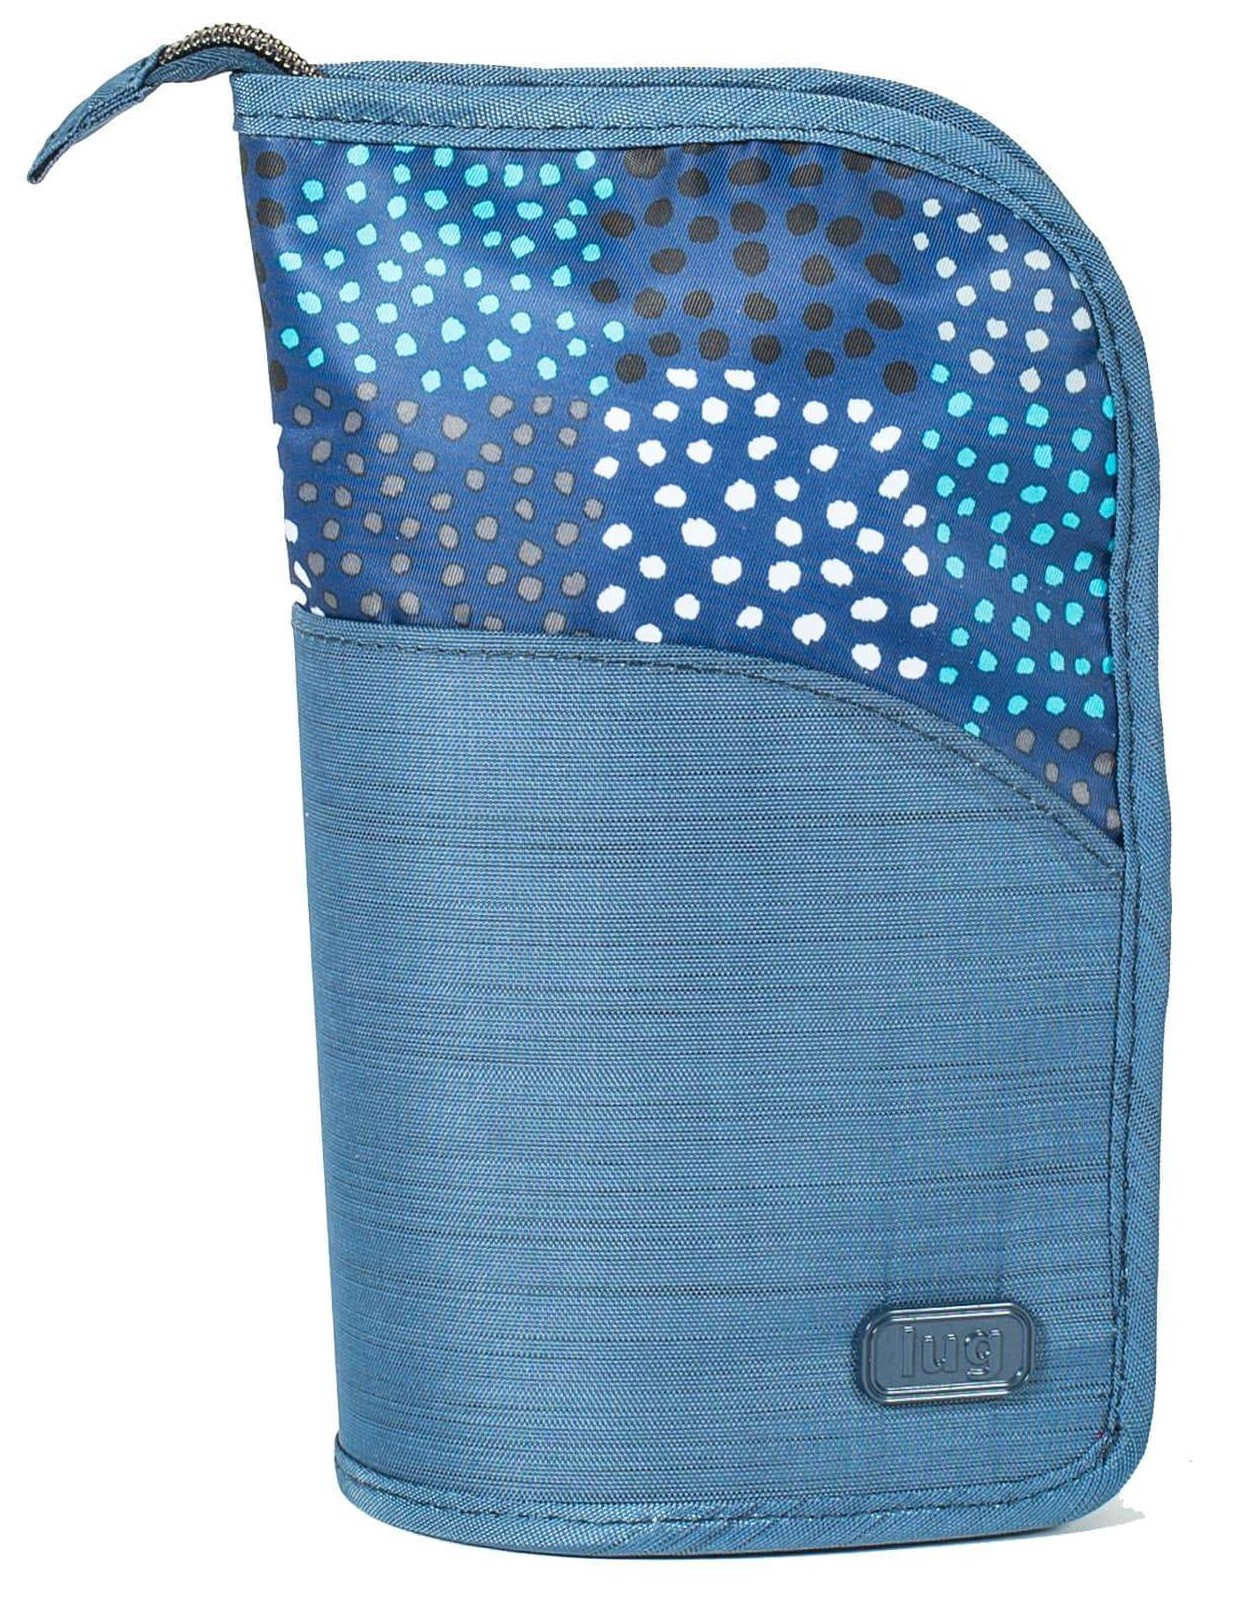 LUG - Canoe - Standing Make-up Case - Confetti Blue